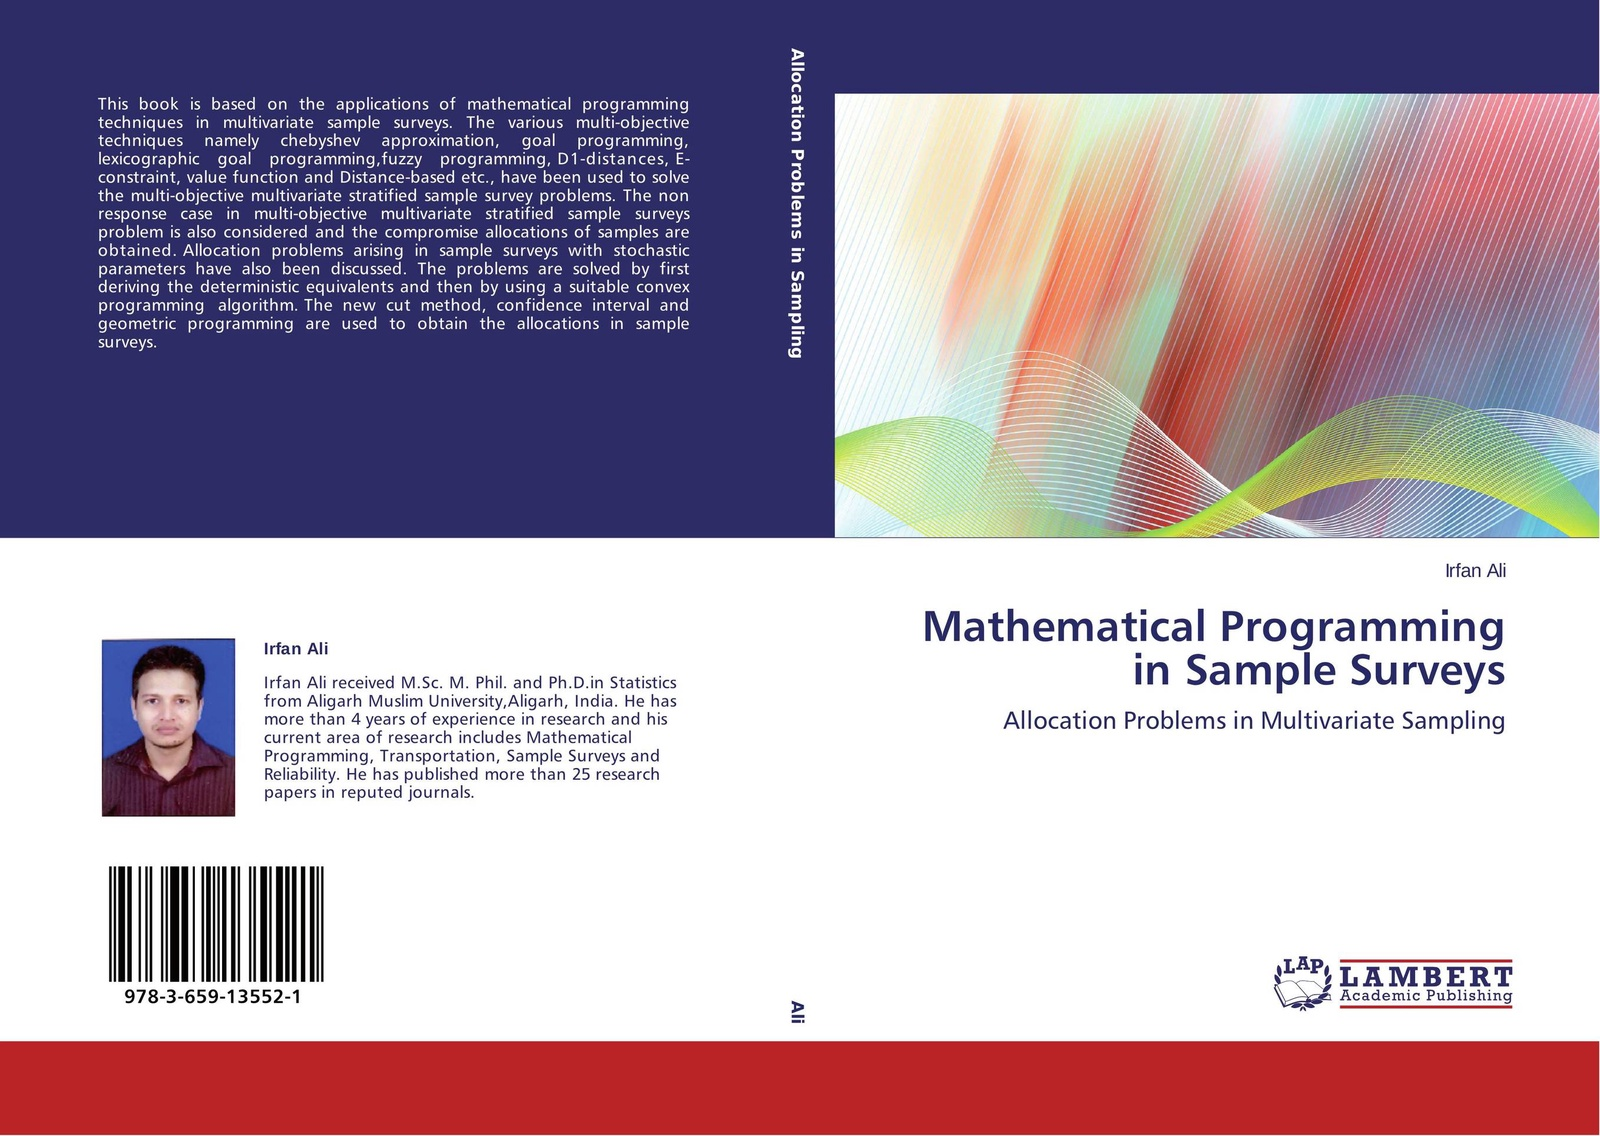 лучшая цена Irfan Ali Mathematical Programming in Sample Surveys